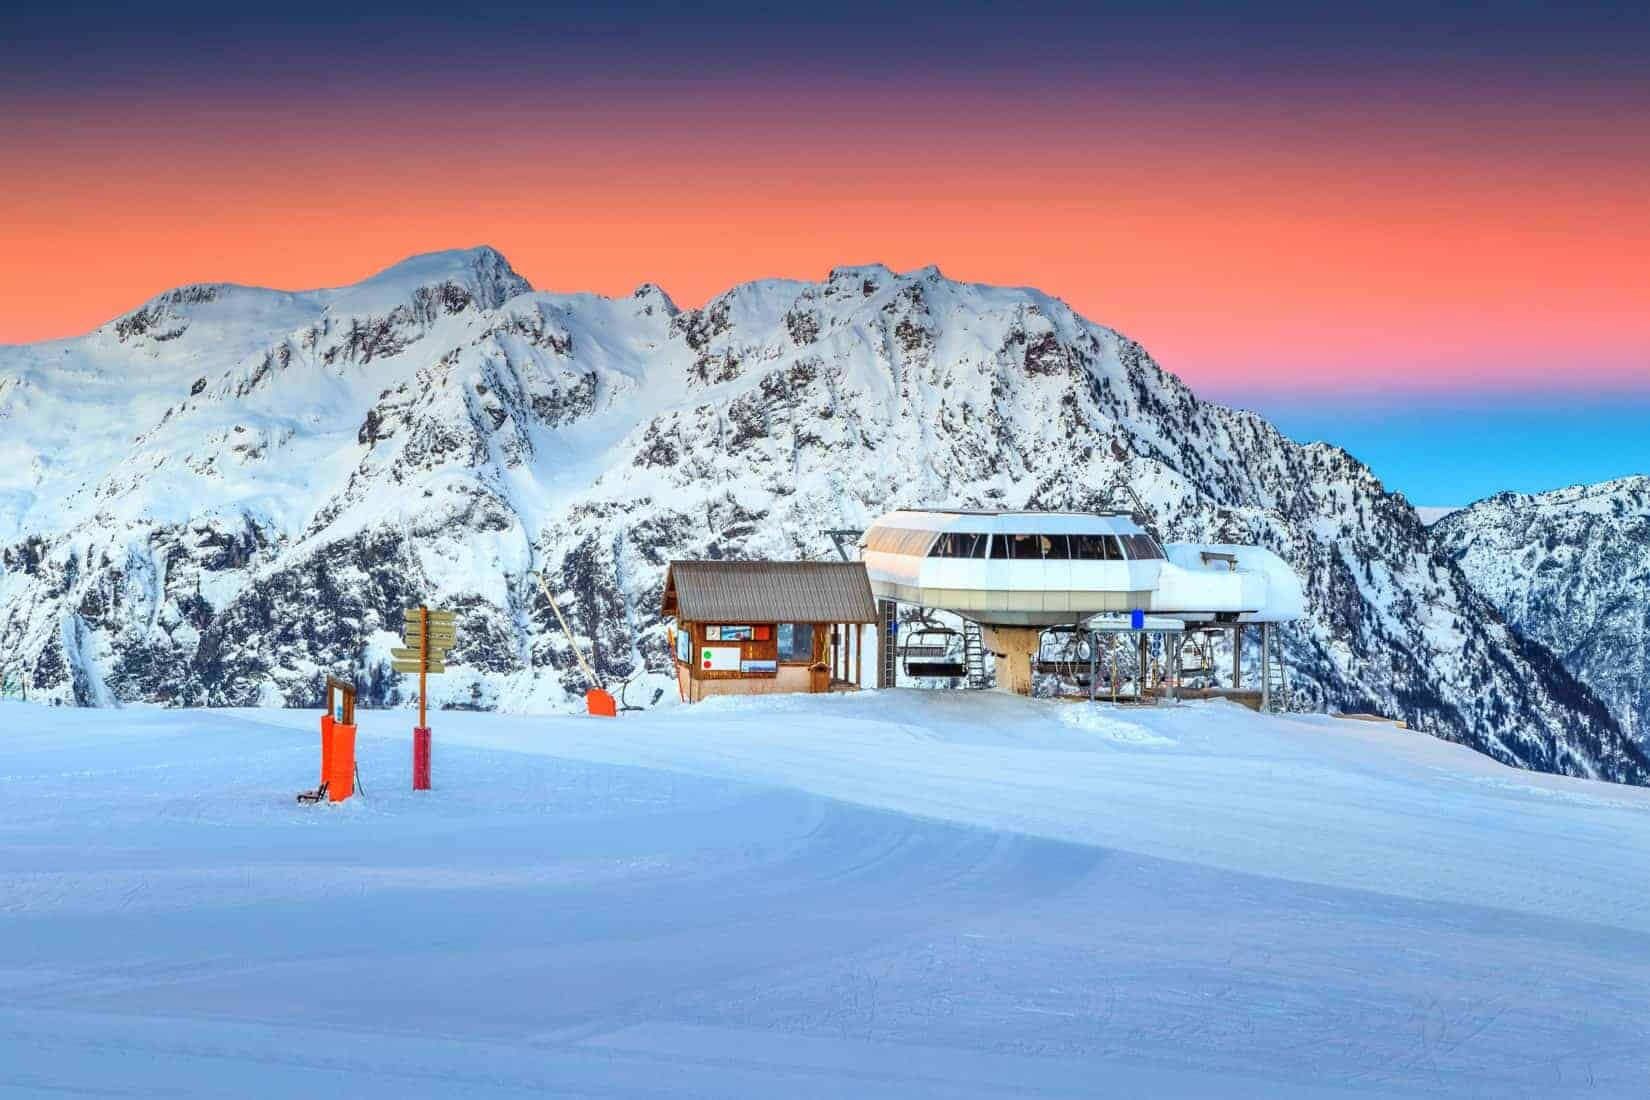 Cable car station and signboard, Alpe d Huez,France, Europe